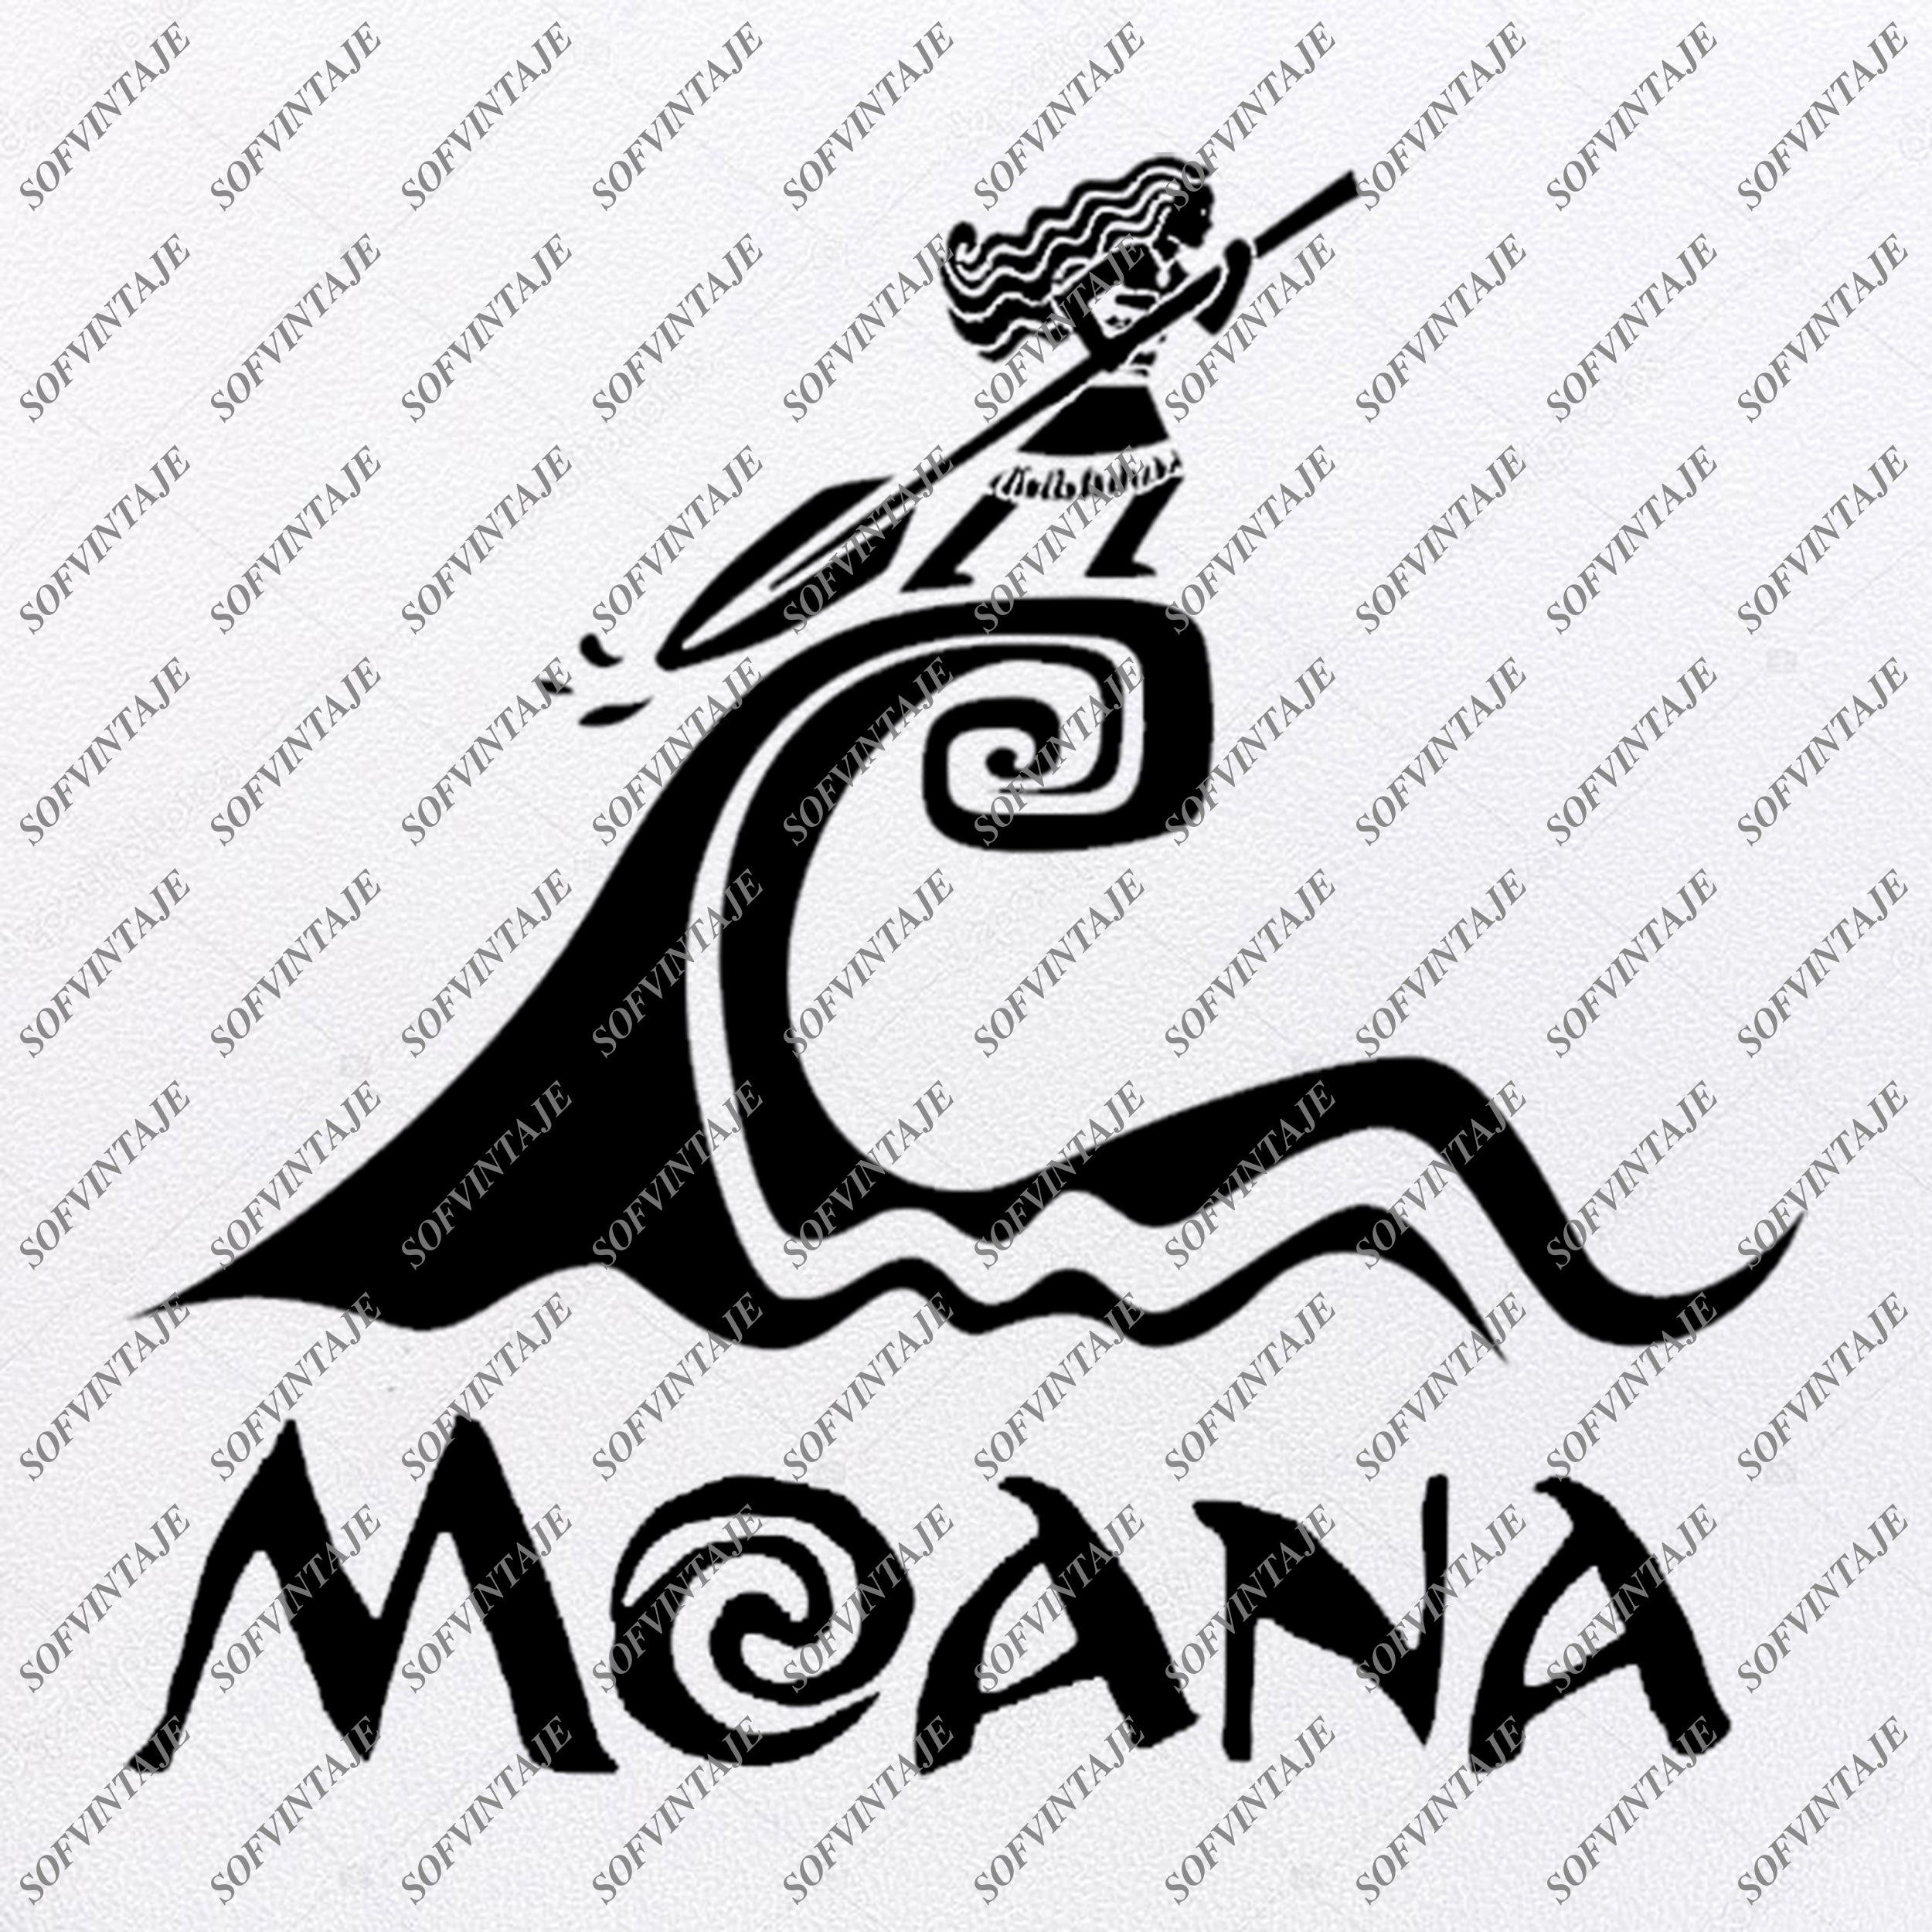 Moana Svg Files Moana Svg Design Moana Png Files Silhouette Cli Sofvintaje